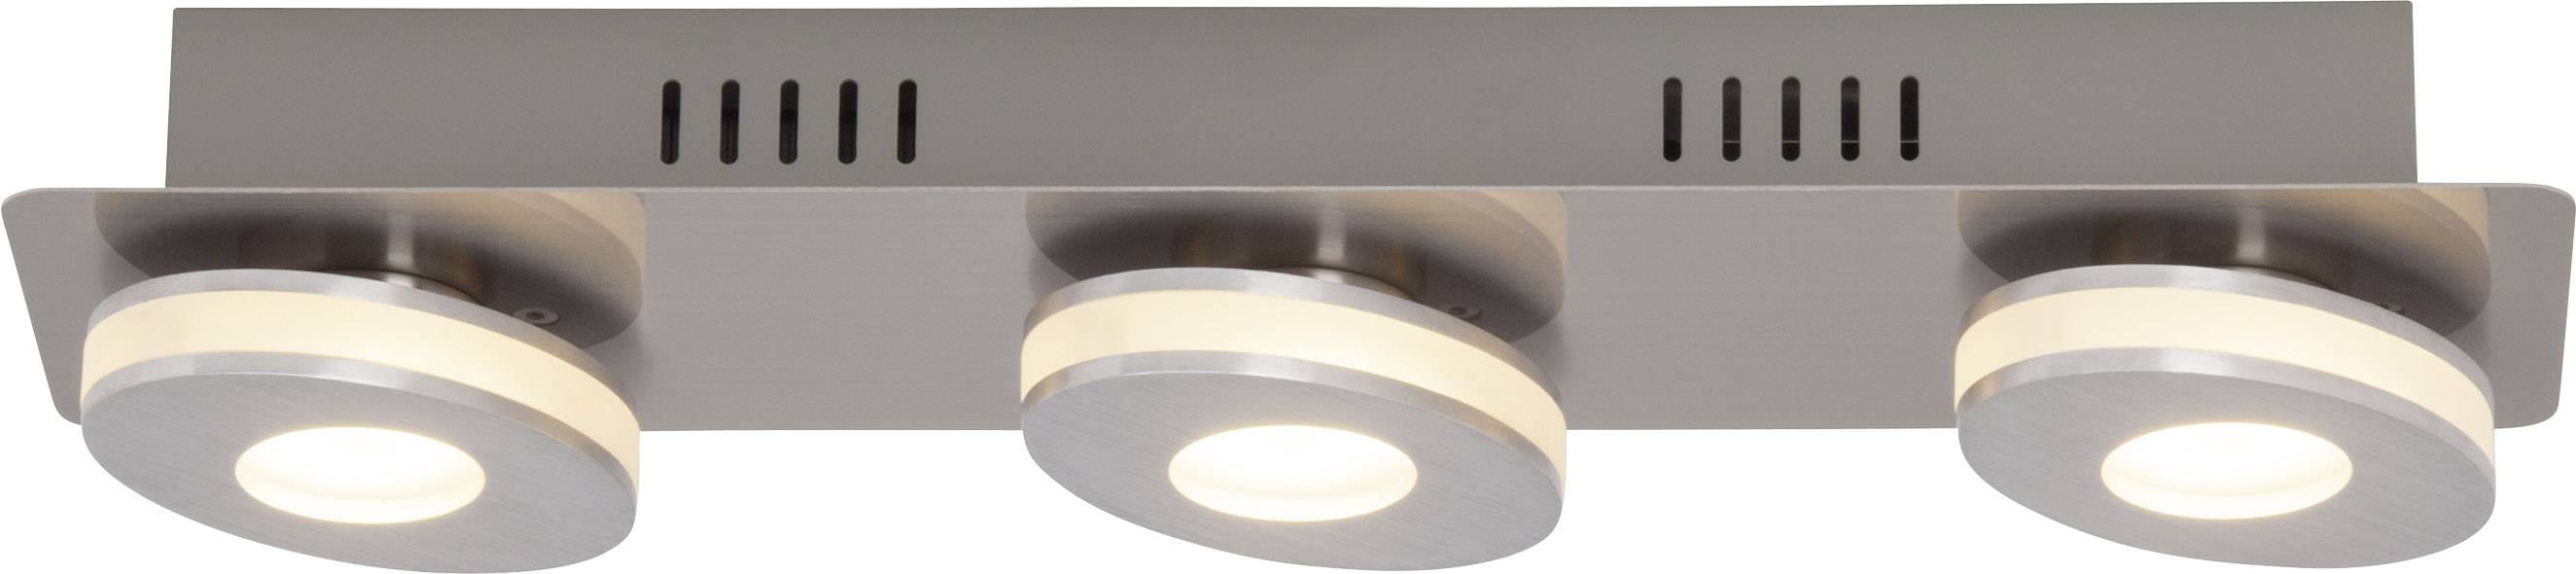 Led Deckenstrahler Brilliant Led Deckenstrahler 12w Warm Weiß Crossing G08530 21 Nickel Aluminium